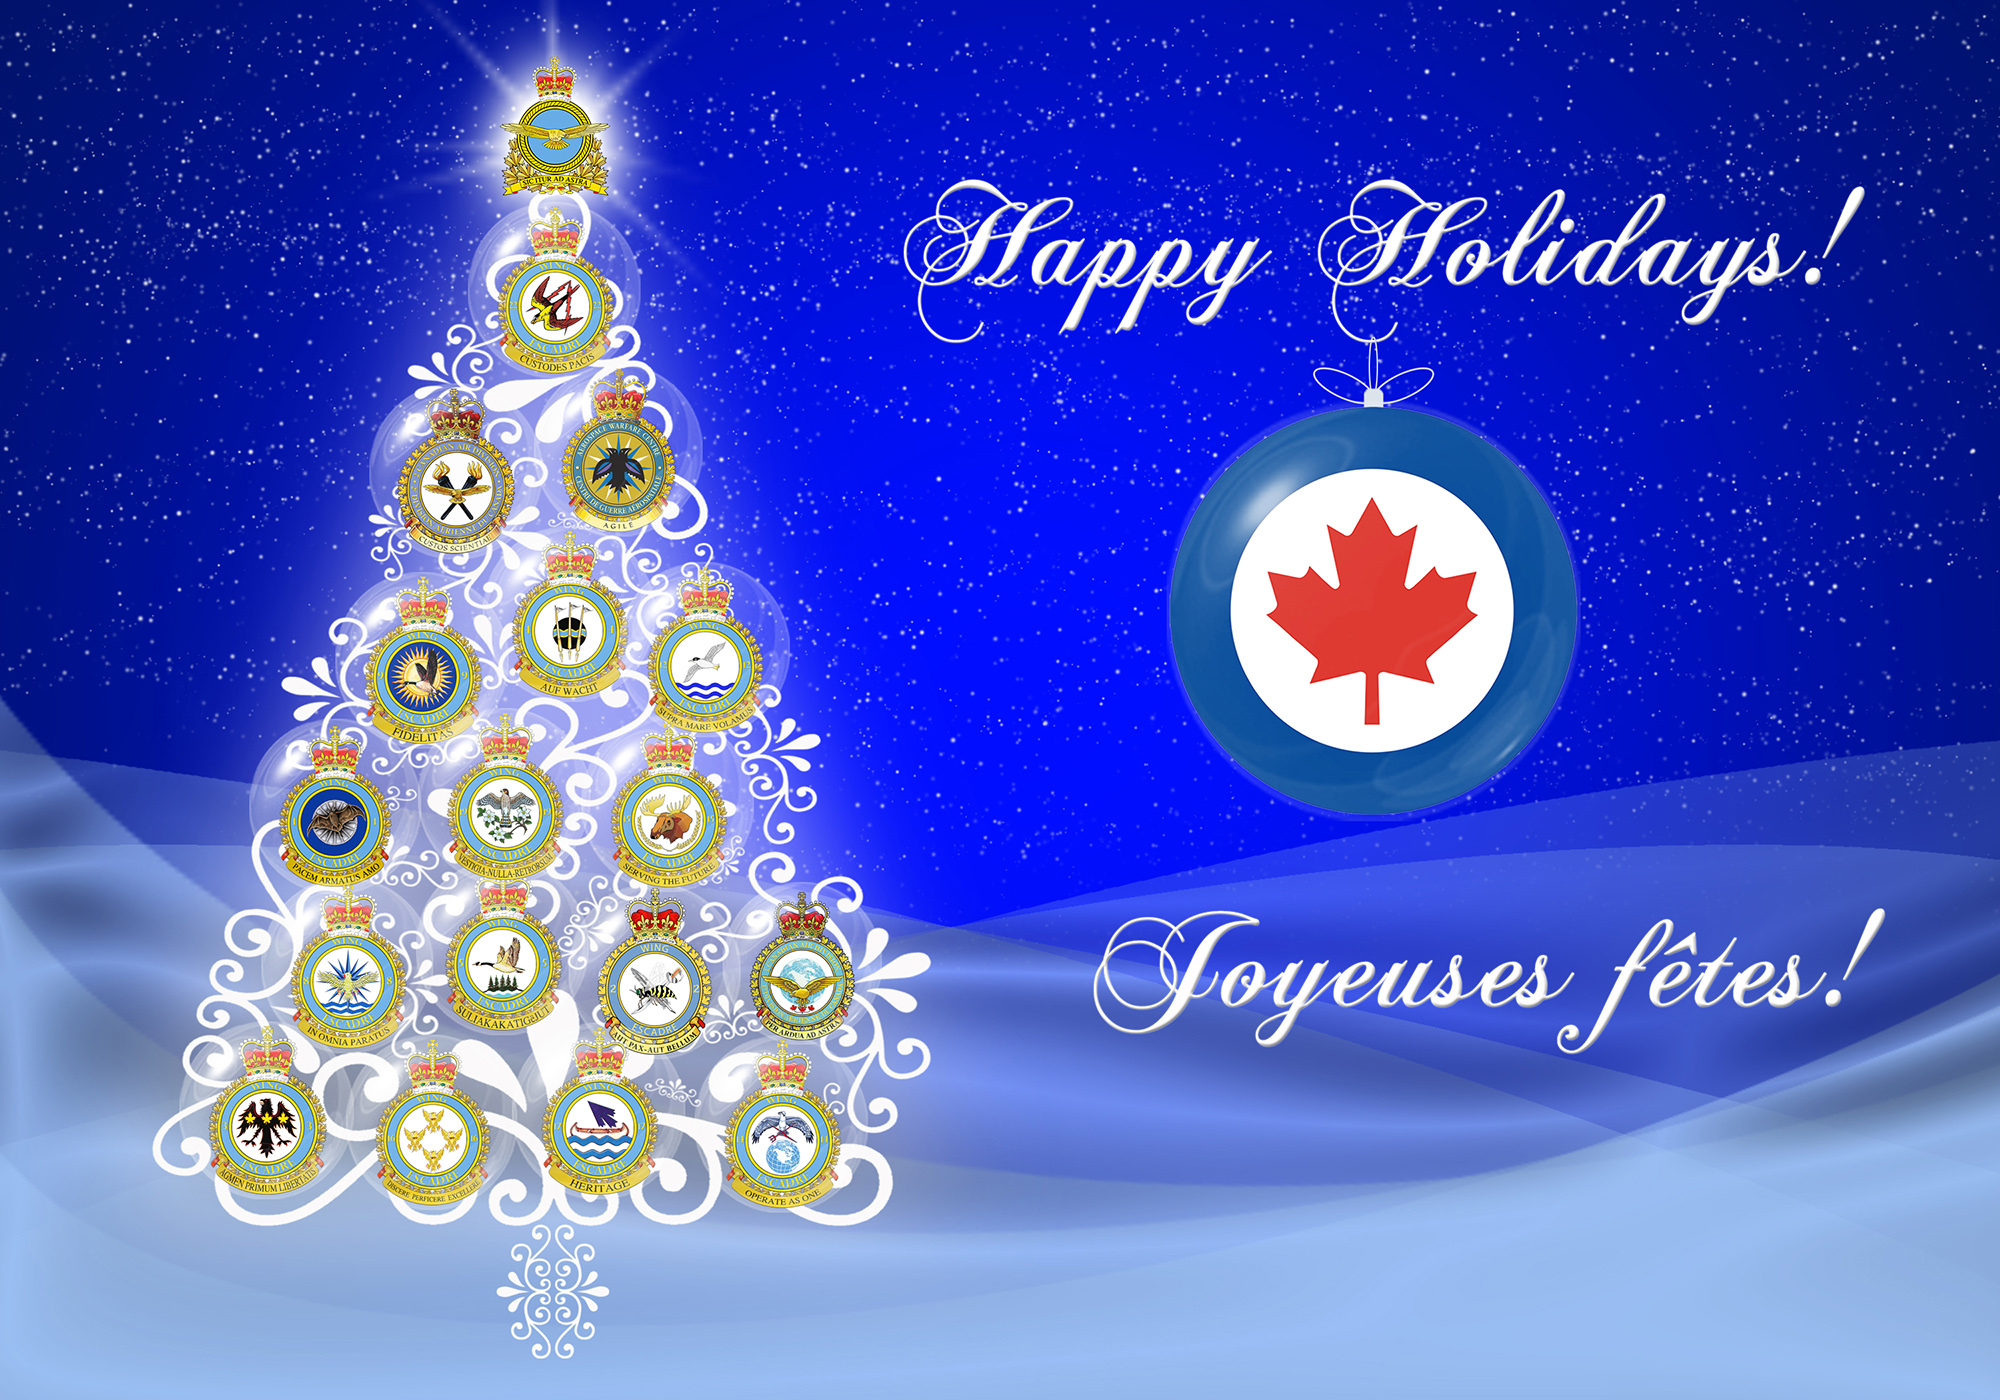 archived - royal canadian air force | news article | merry christmas